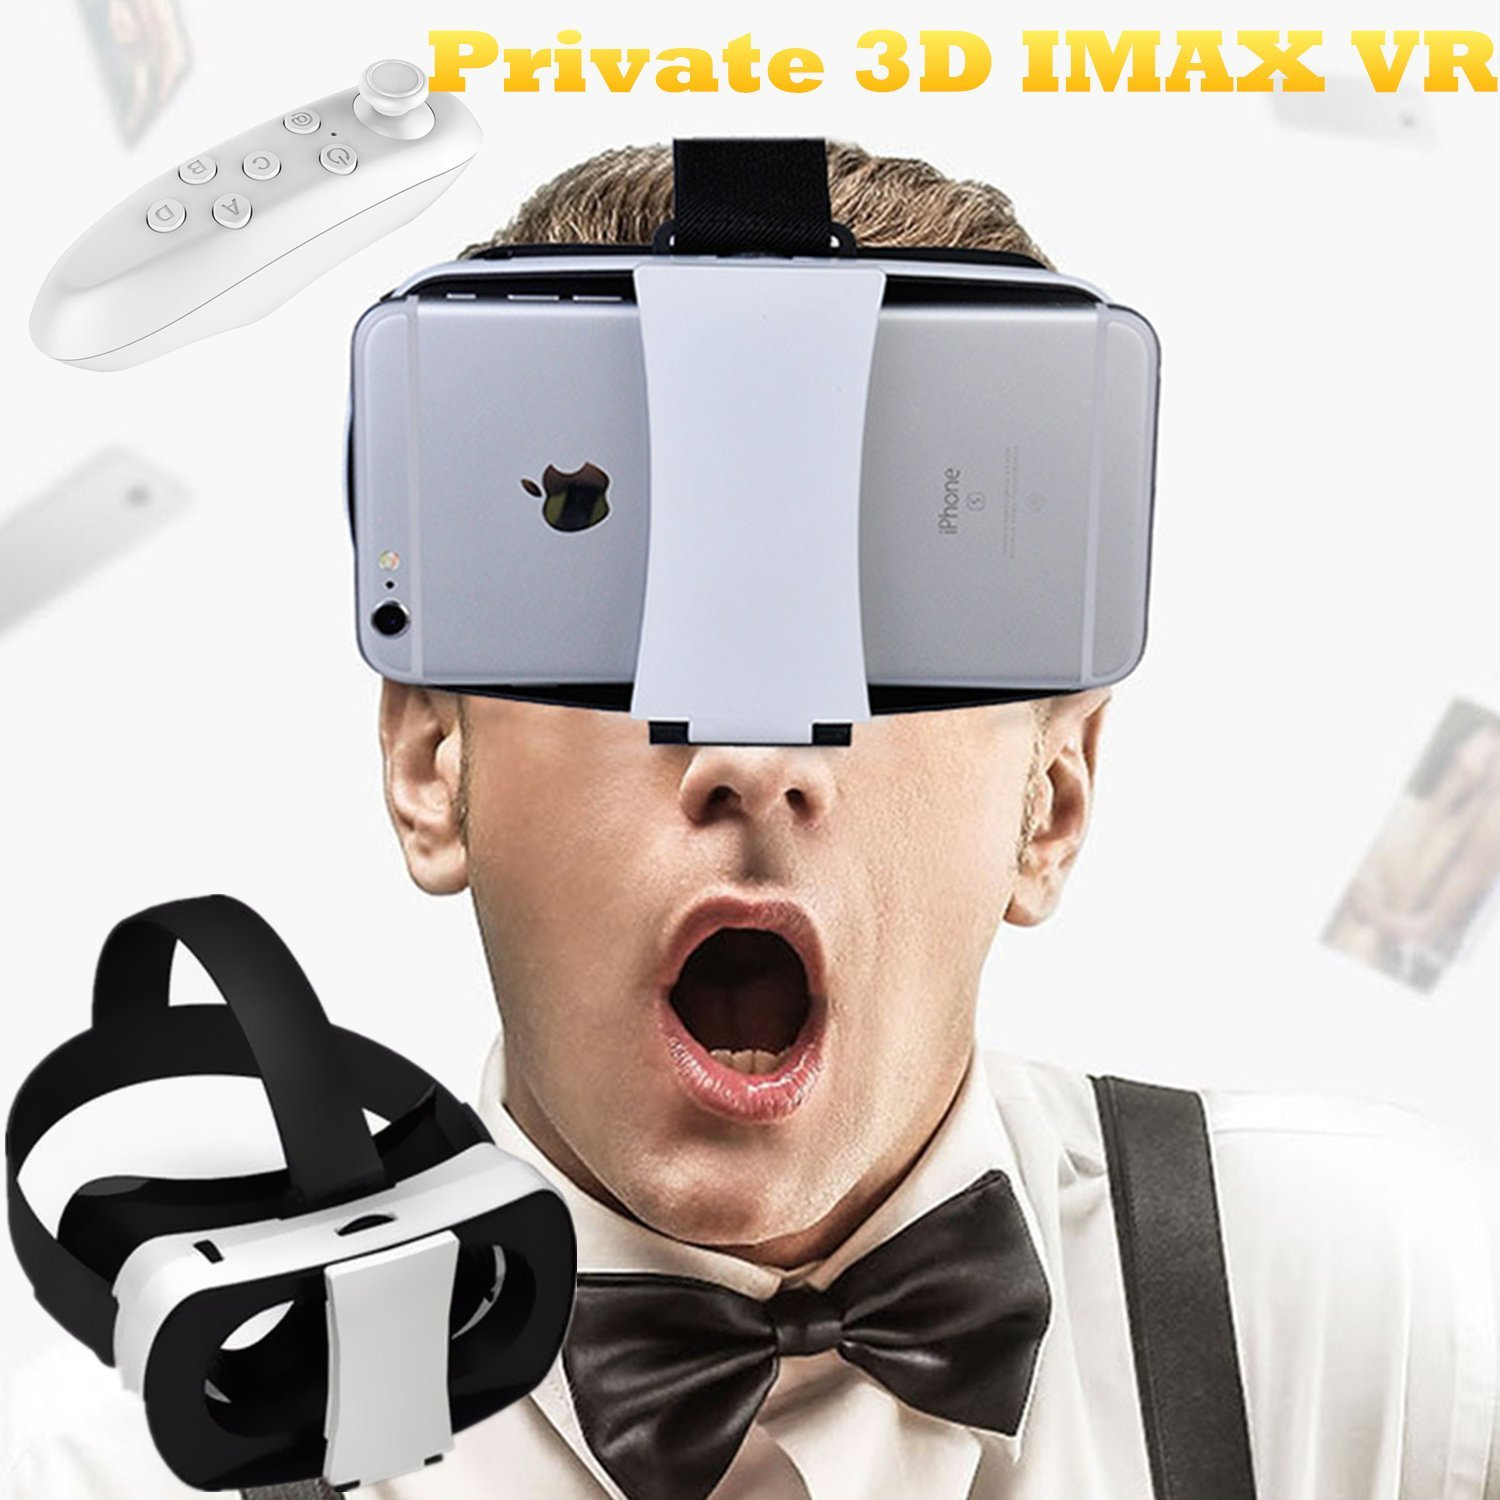 "3D Virtual Reality Headset, Tsanglight VR Glasses/Headset 4.5""-5.5"" Cellphone 3D Movie/Game Viewer with Remote for IOS/Android, for iPhone 7/6S/6S Plus Samsung Galaxy S7/6 Edge/5 Sony LG Huawei etc"